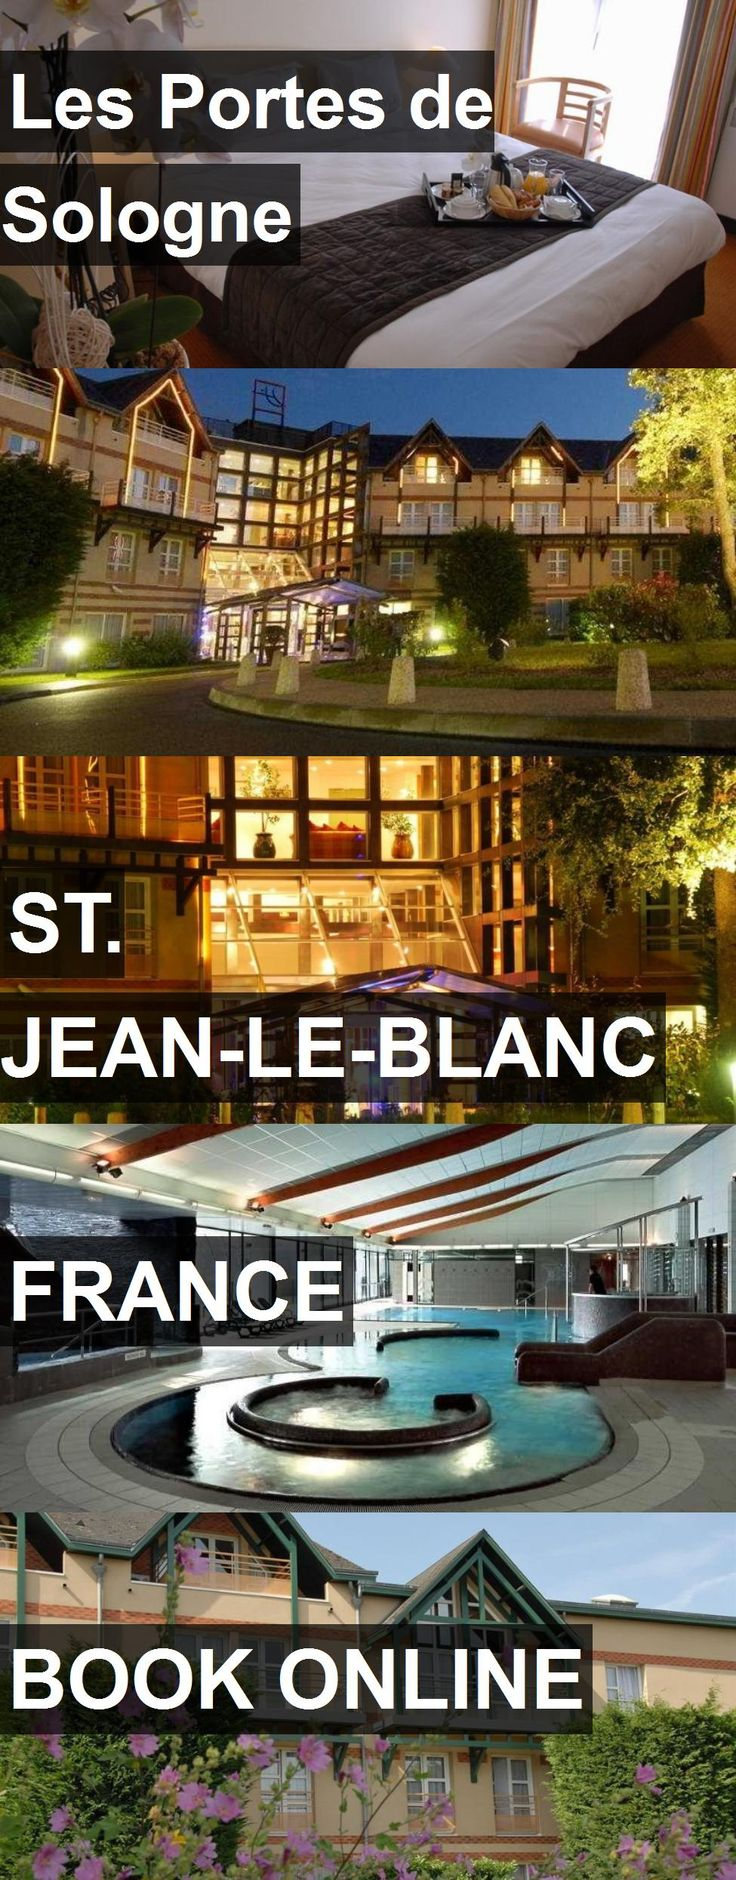 Hotel Les Portes de Sologne in St. Jean-le-Blanc, France. For more information, photos, reviews and best prices please follow the link. #France #St.Jean-le-Blanc #travel #vacation #hotel